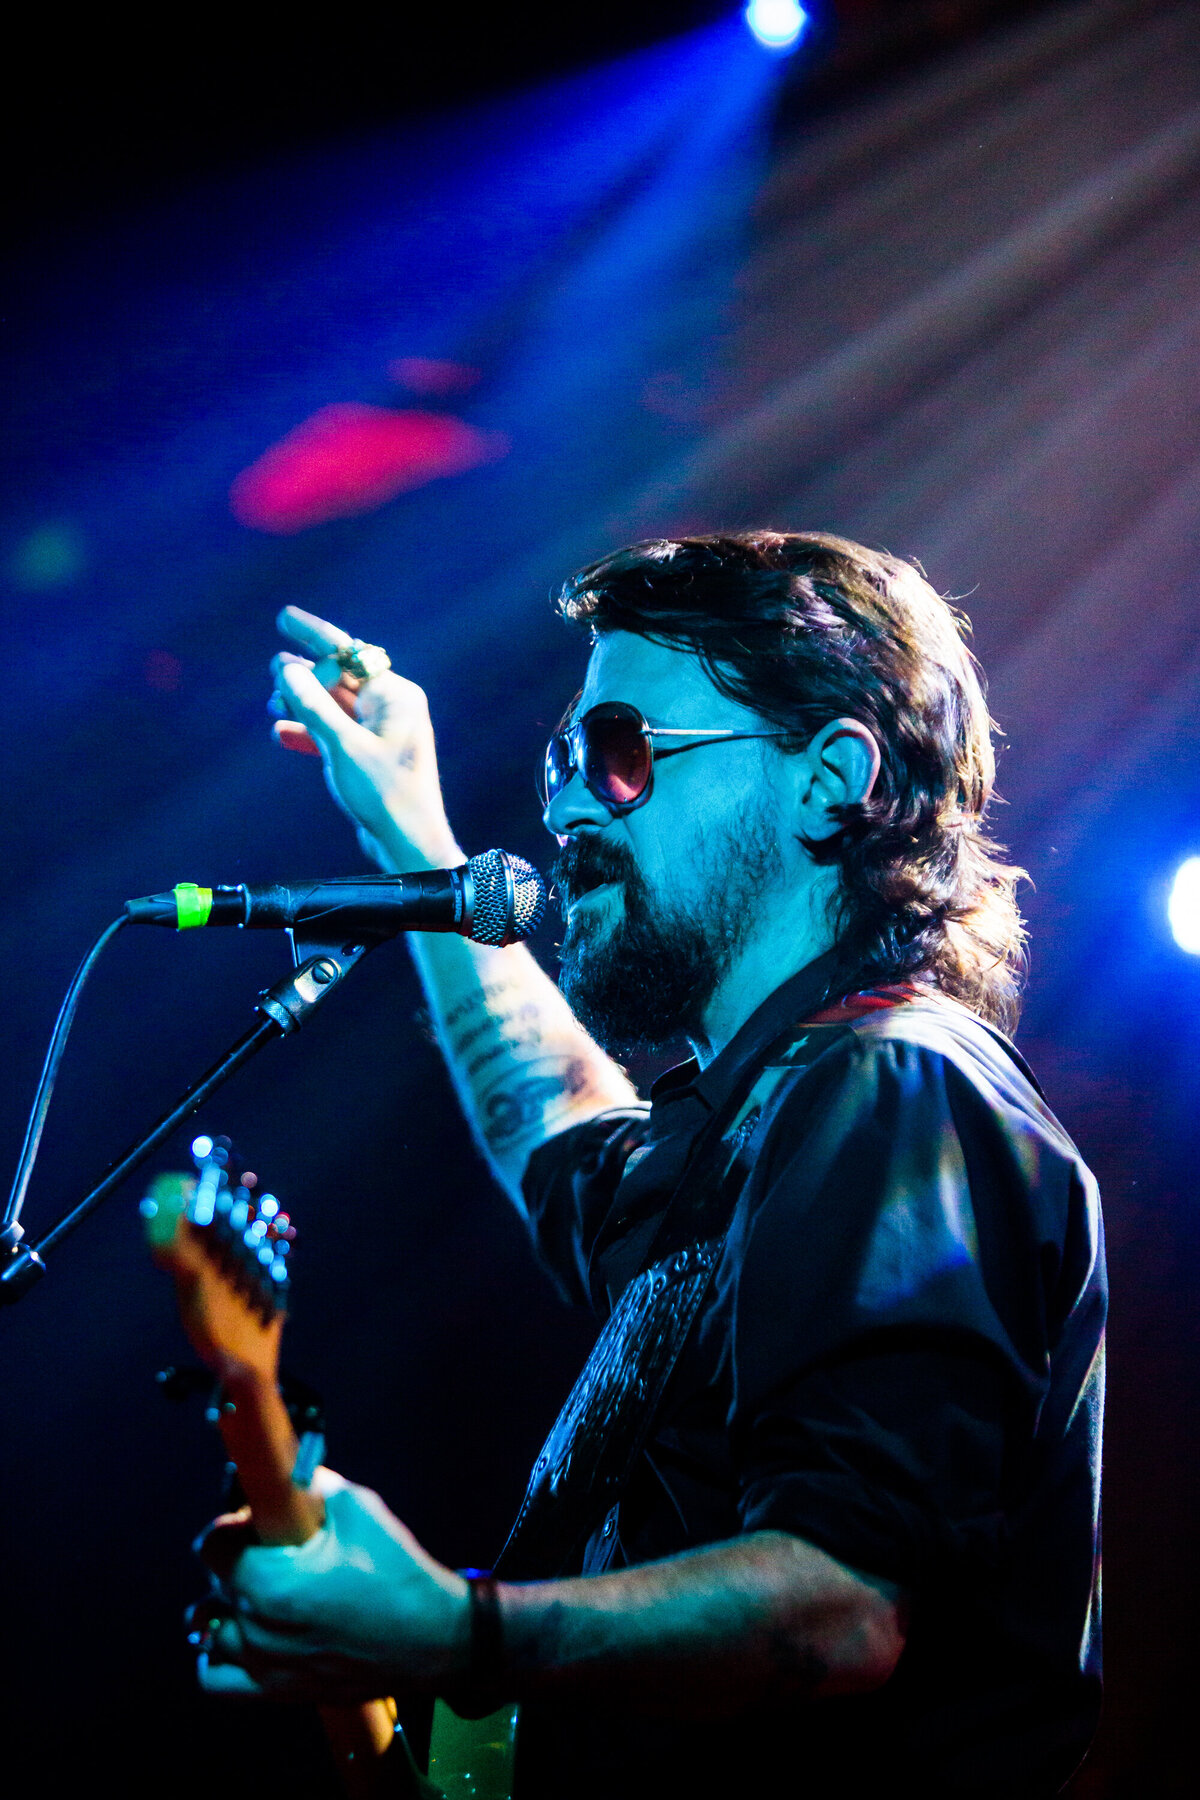 041-ShooterJennings_Troubadour_KH_0013